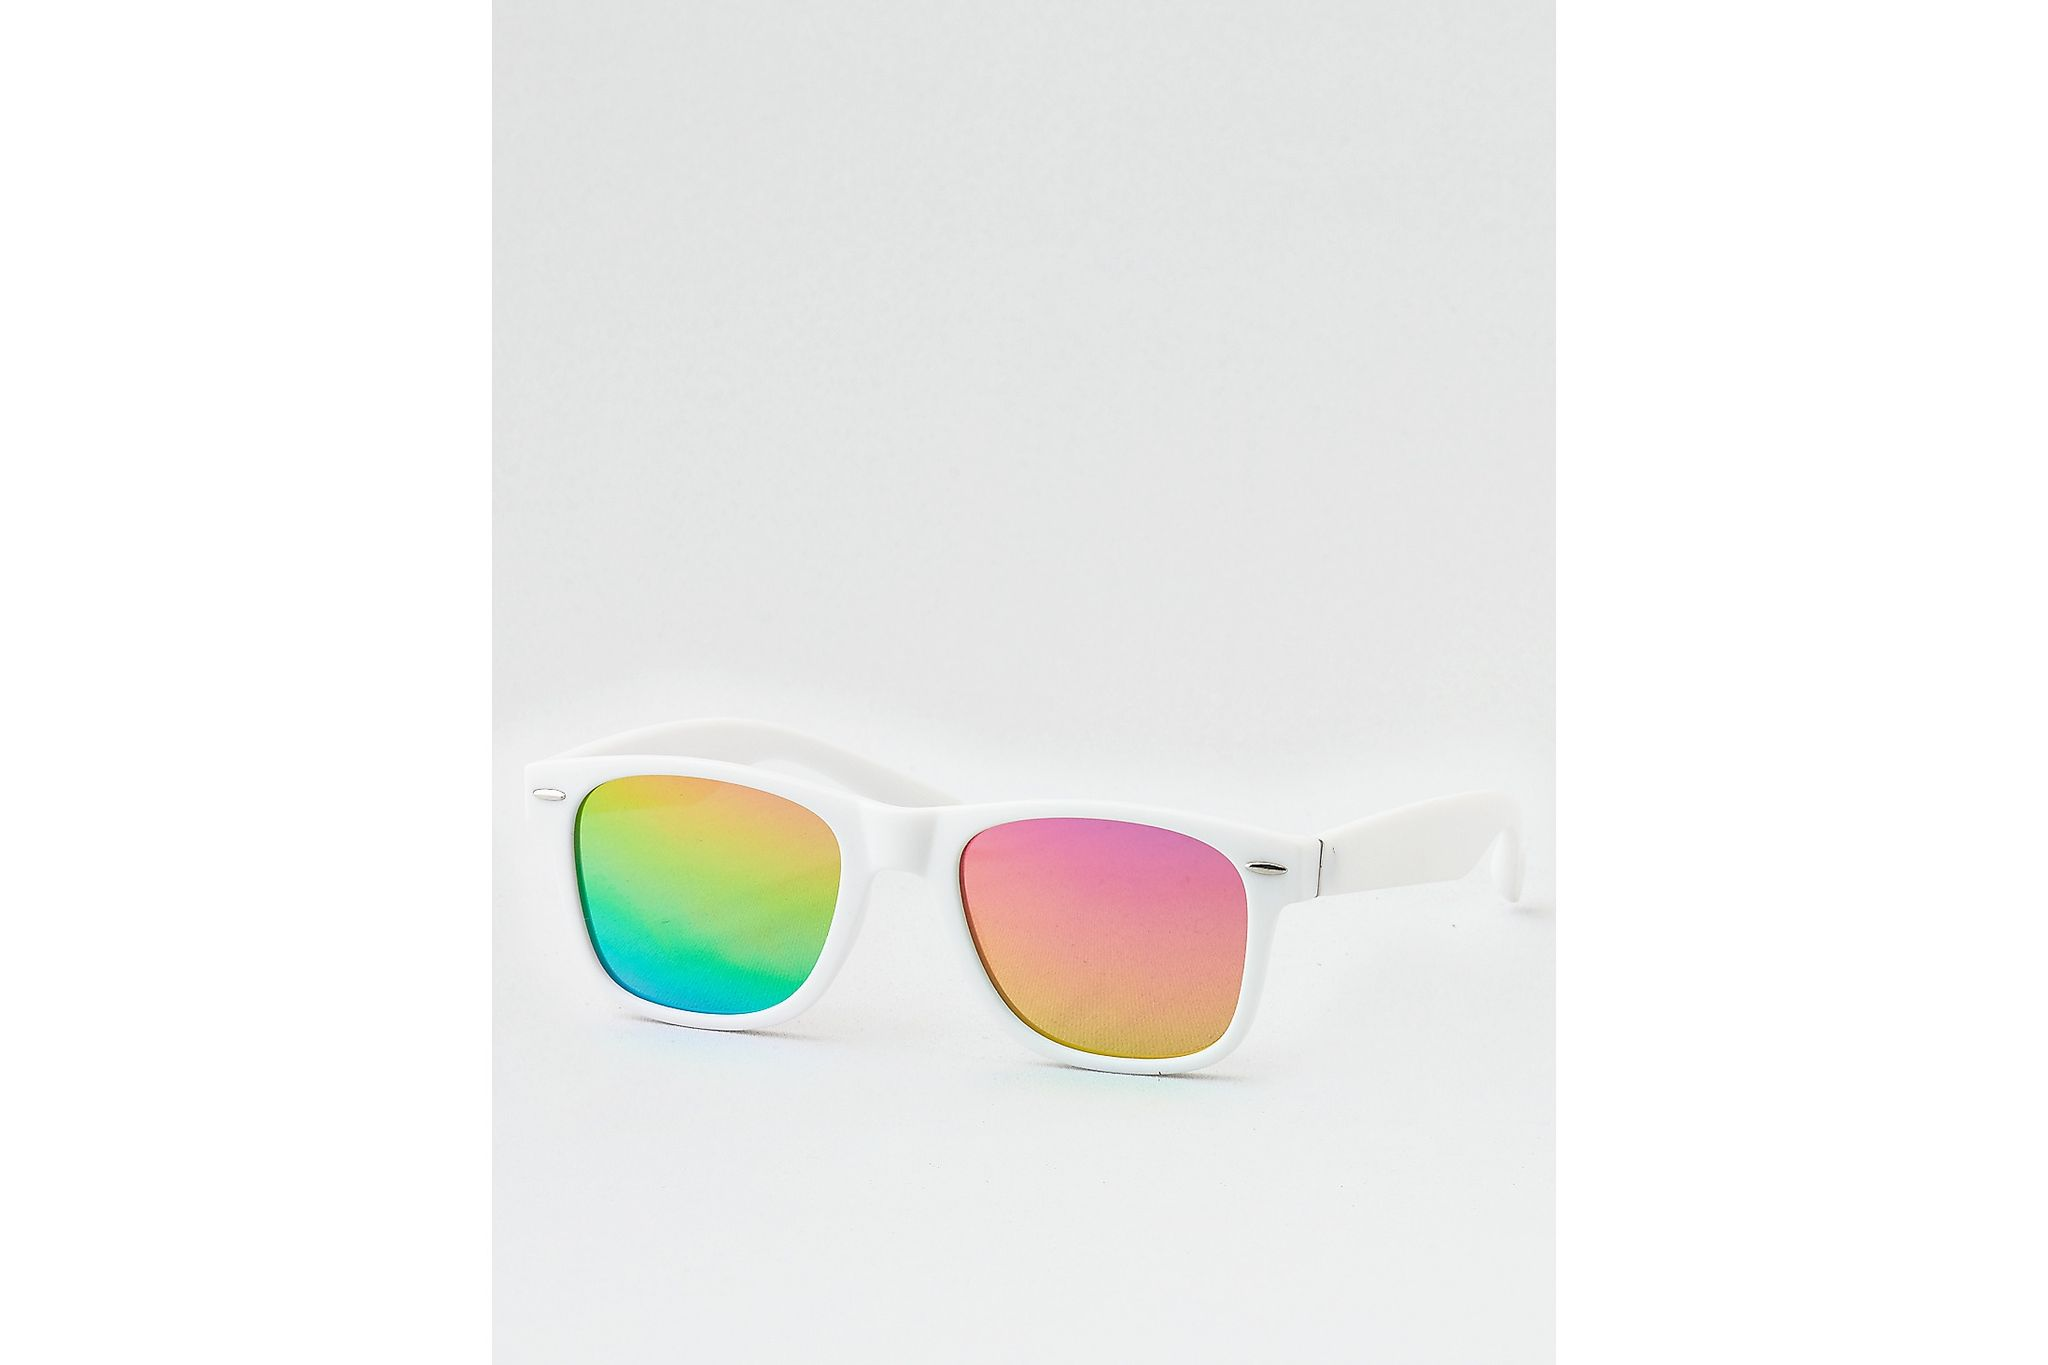 af5a1fbd50 American Eagle White Rainbow Classics Sunglasses Price in Egypt ...